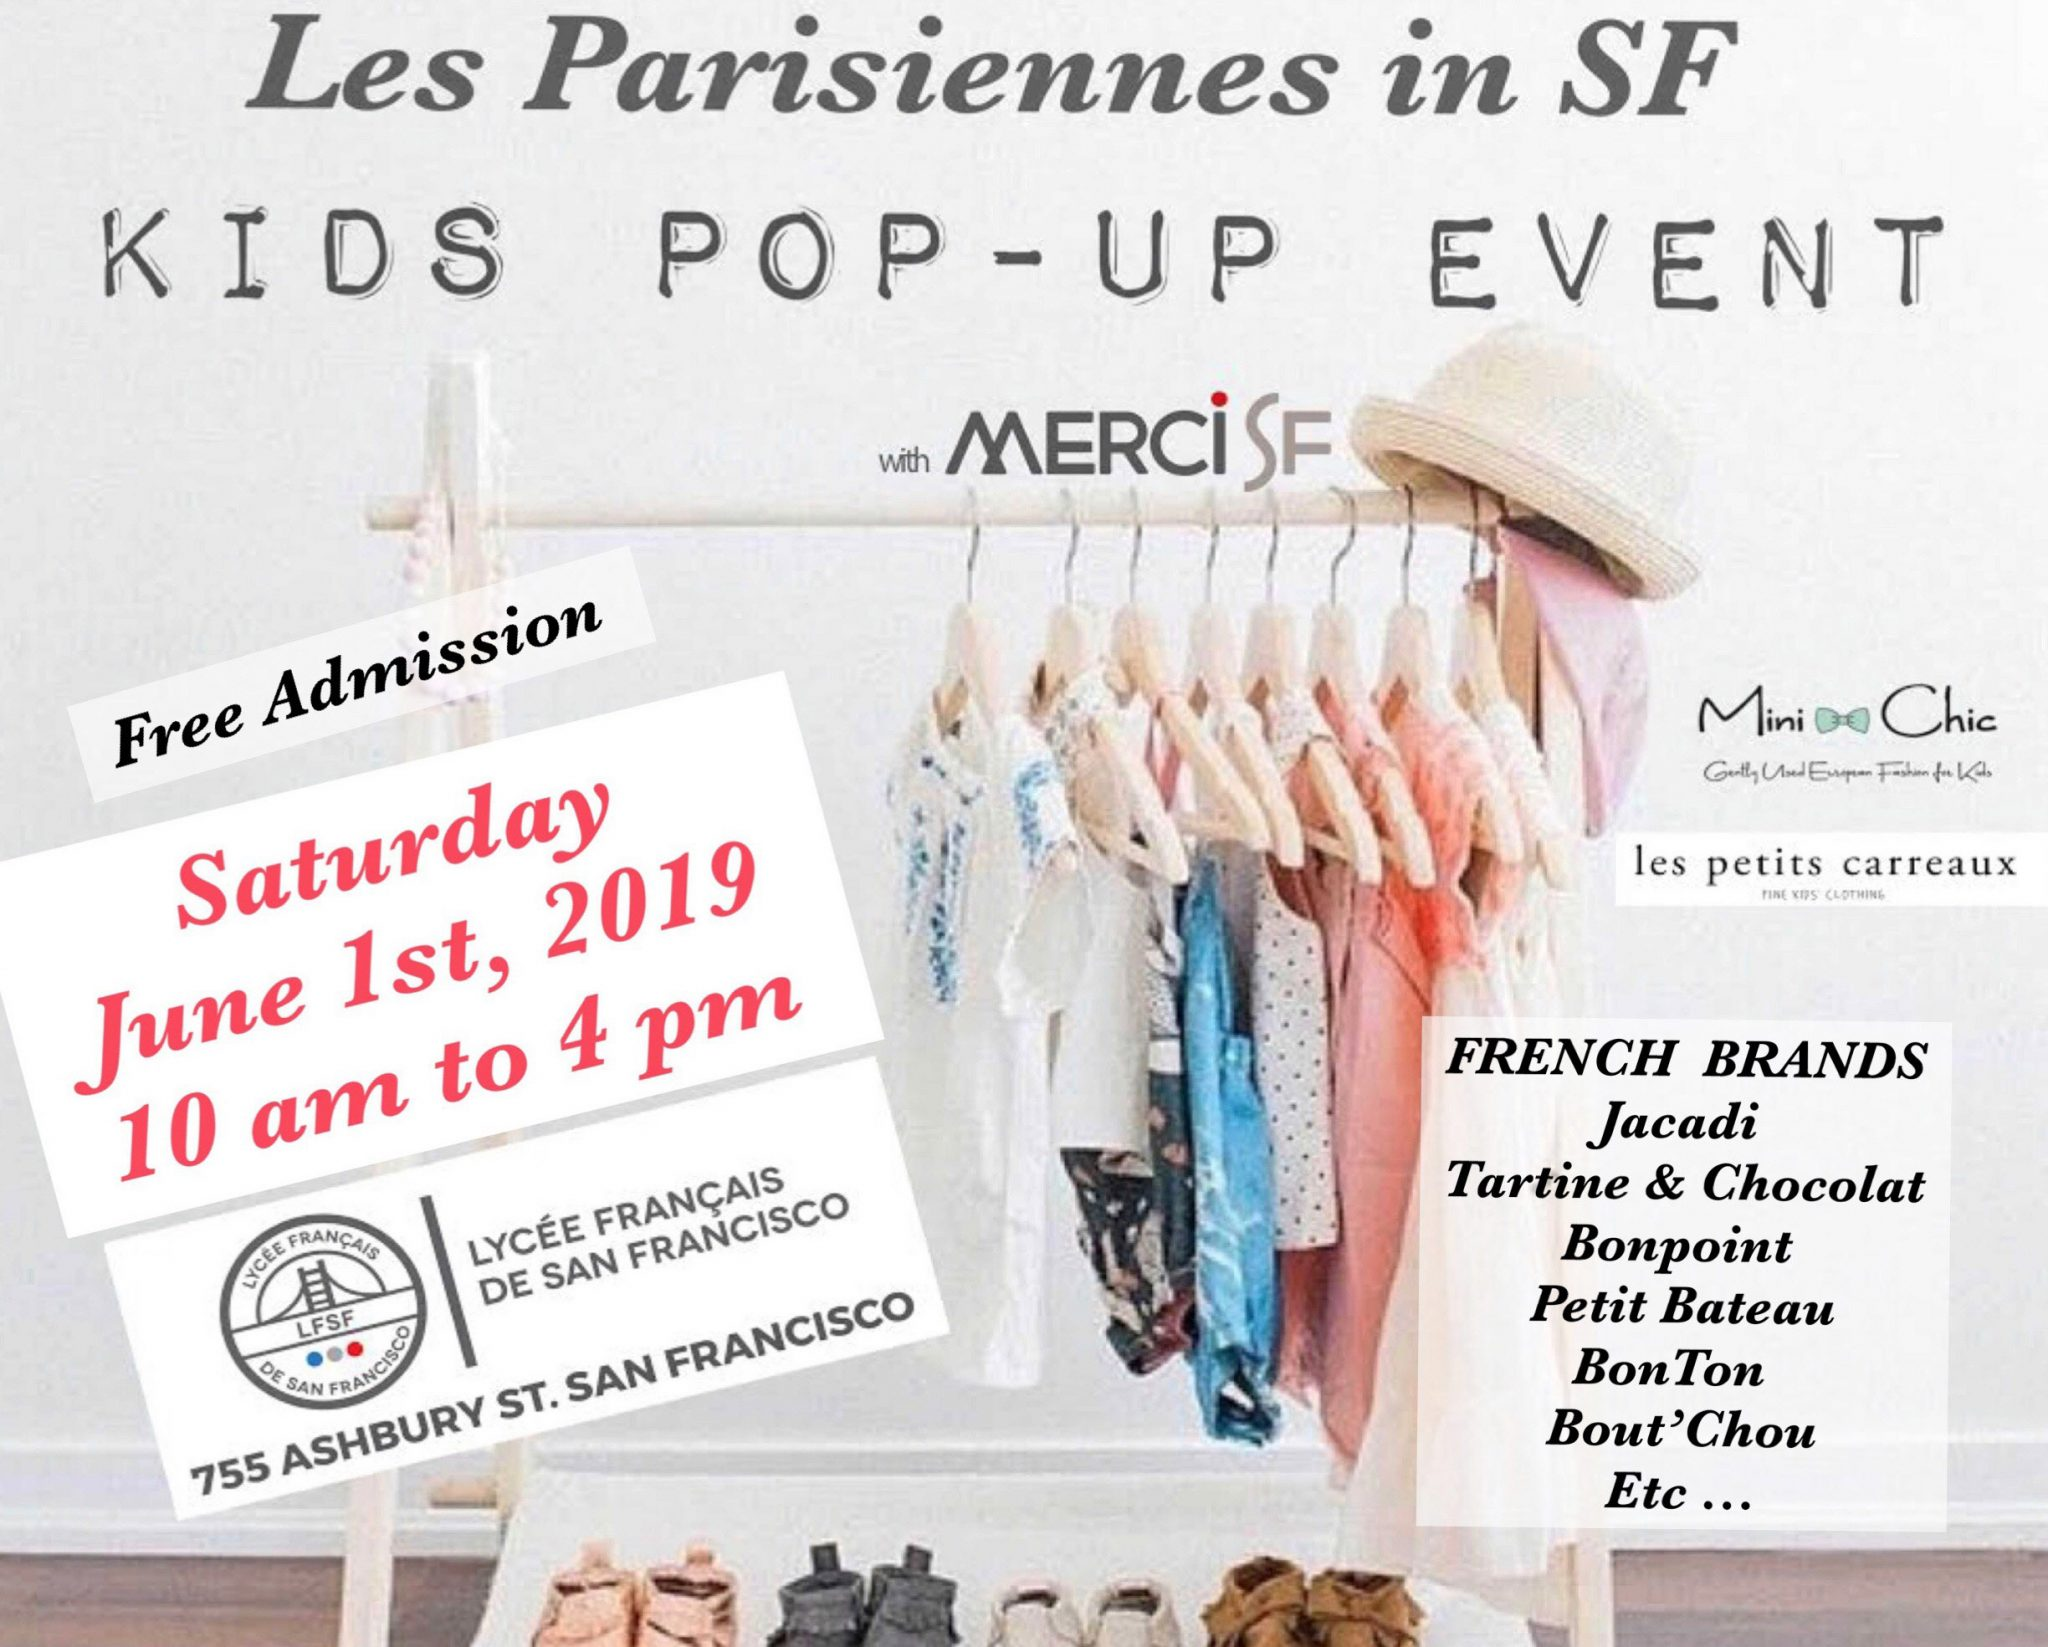 Pop-up event for second-hand kids clothing and more… free event on June 1st